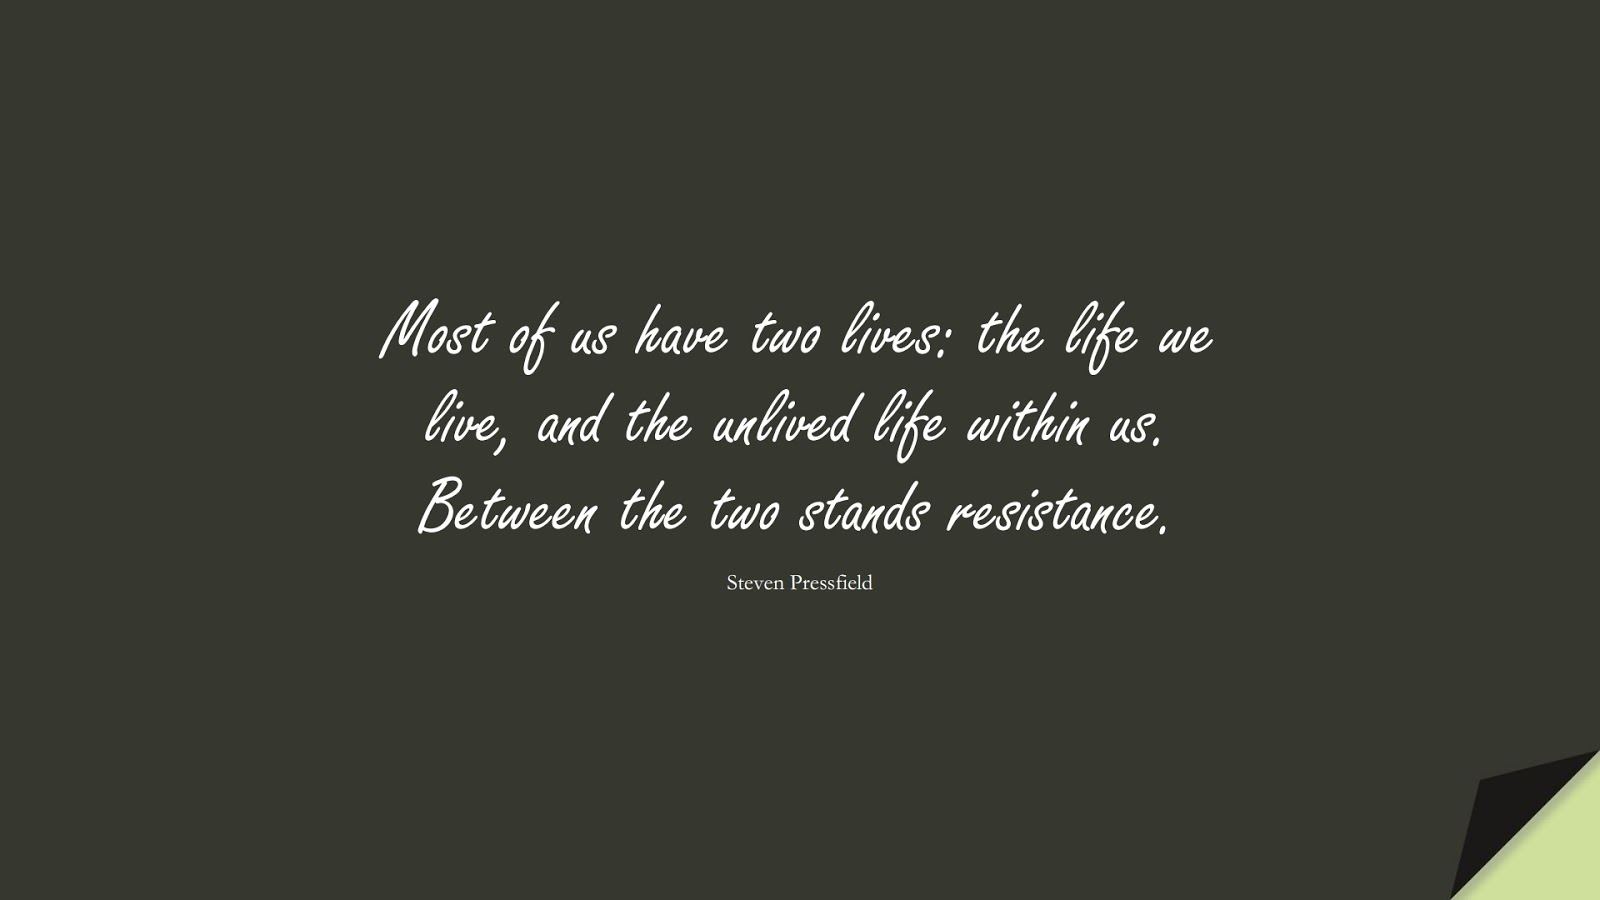 Most of us have two lives: the life we live, and the unlived life within us. Between the two stands resistance. (Steven Pressfield);  #FearQuotes